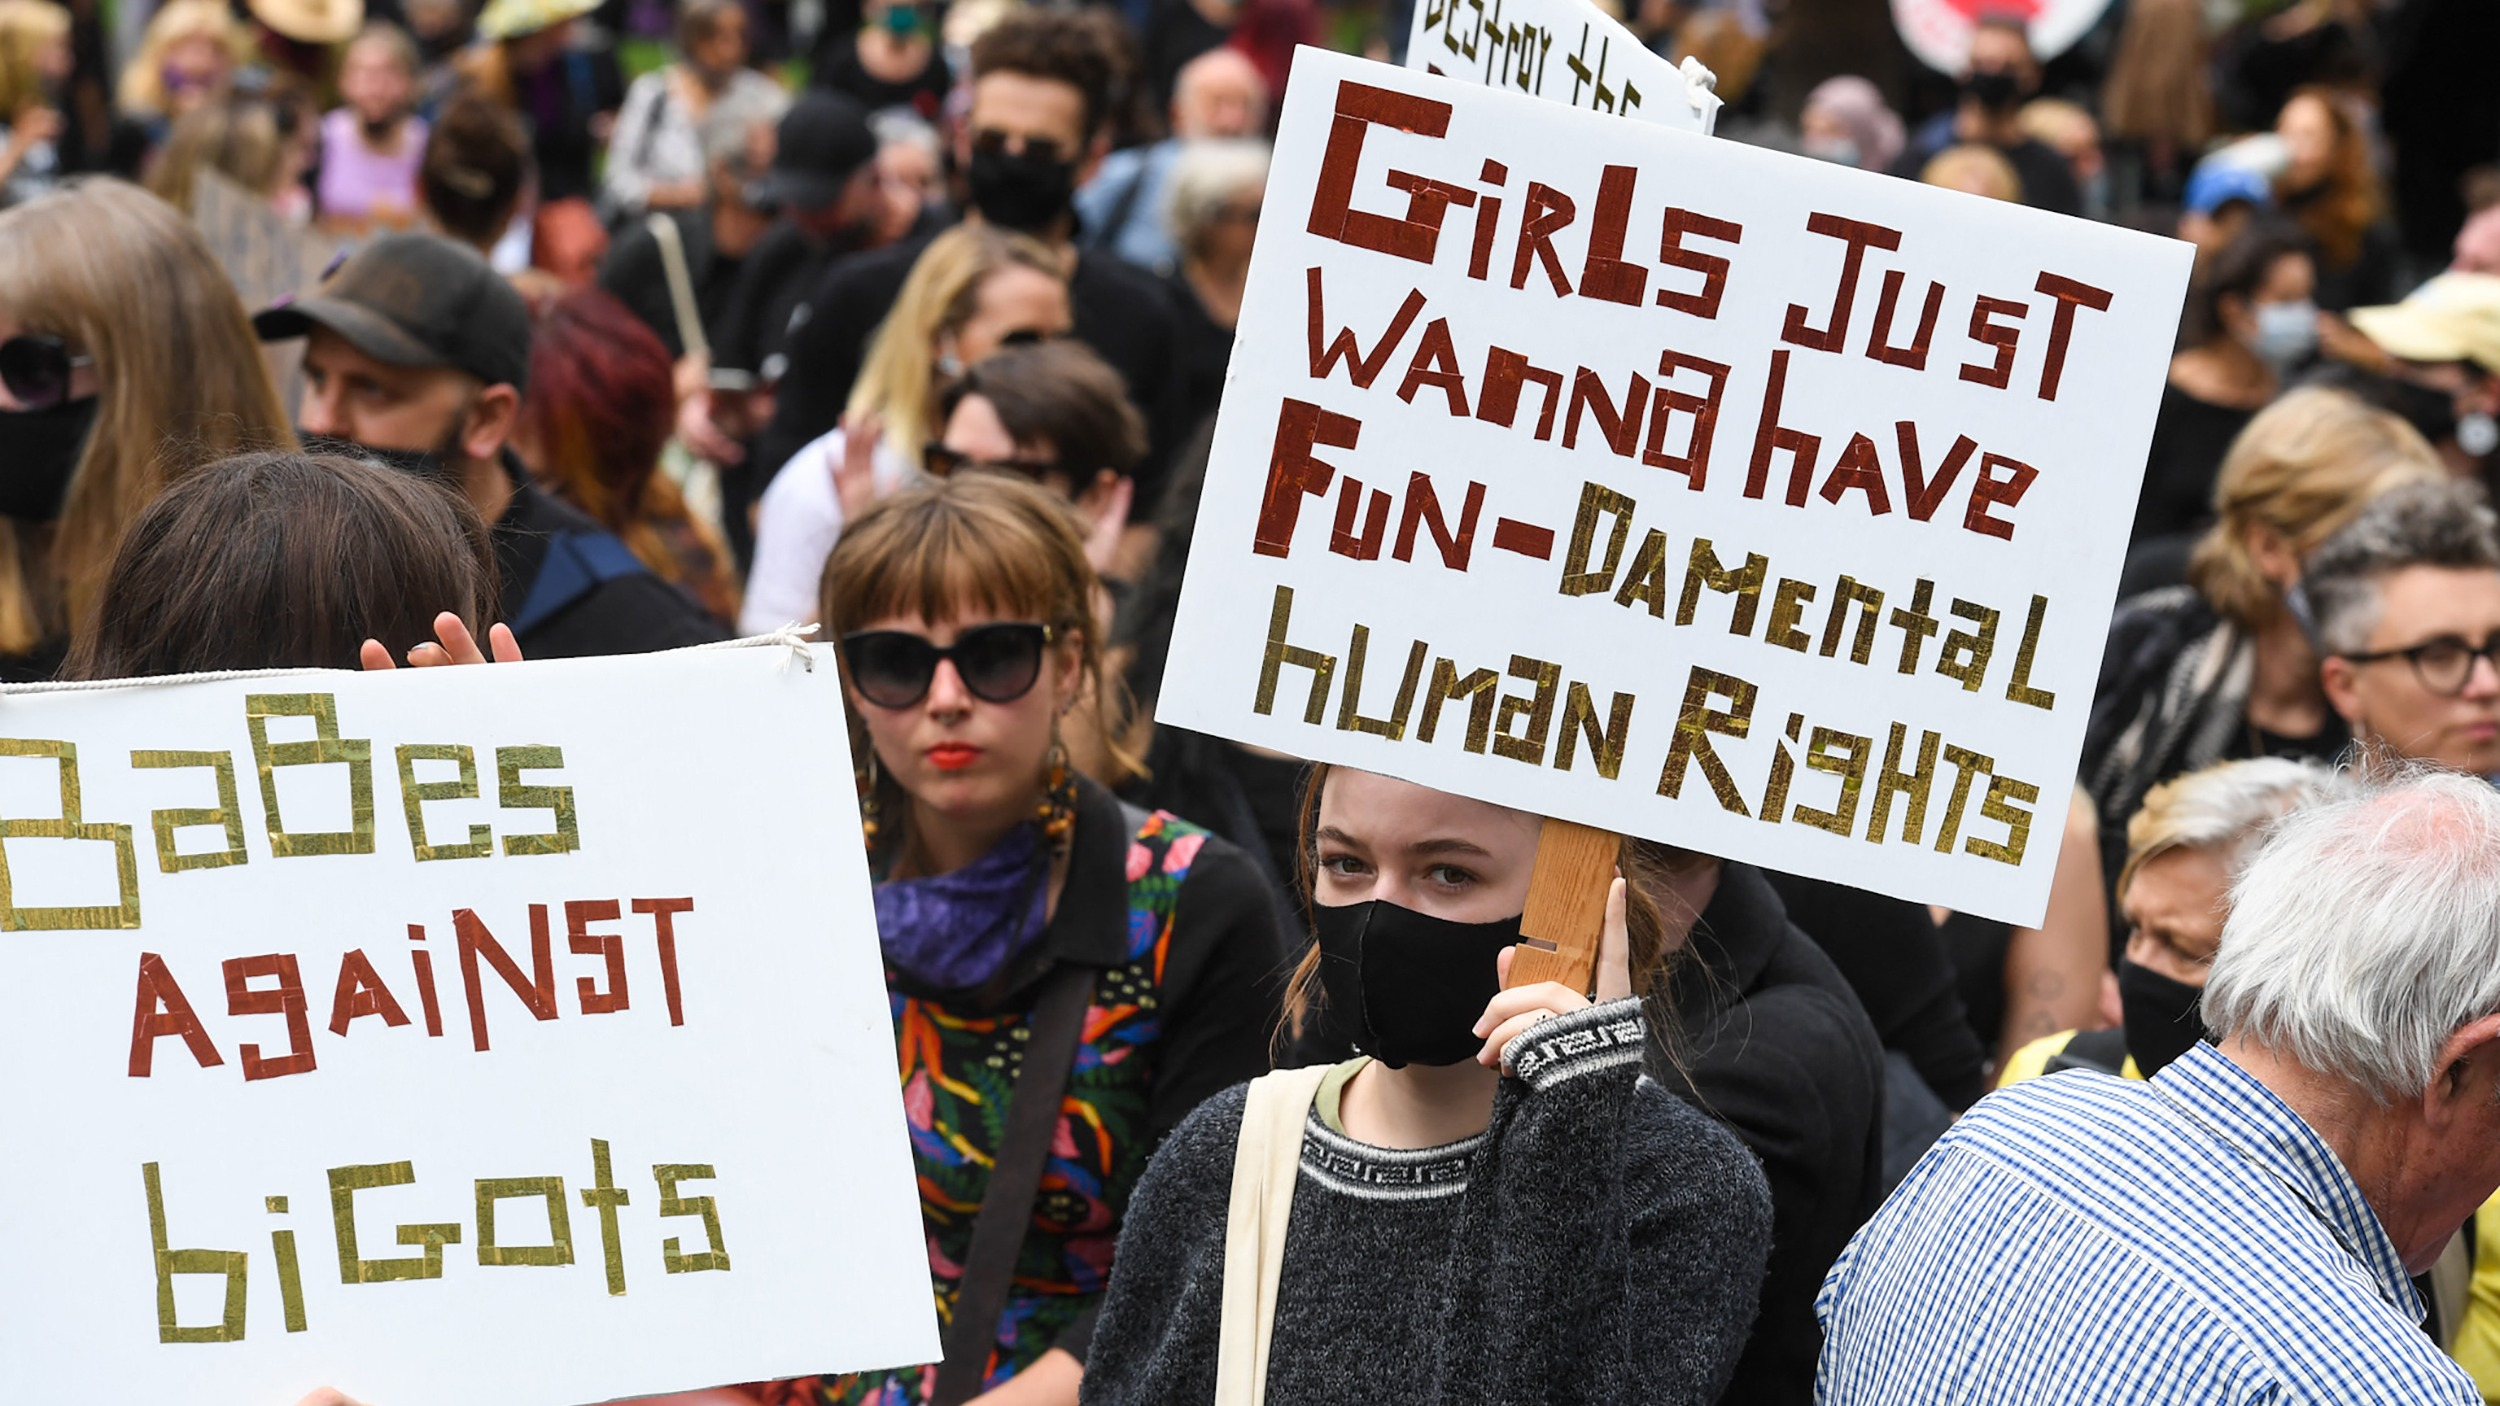 People attend a protest against sexual violence and gender inequality